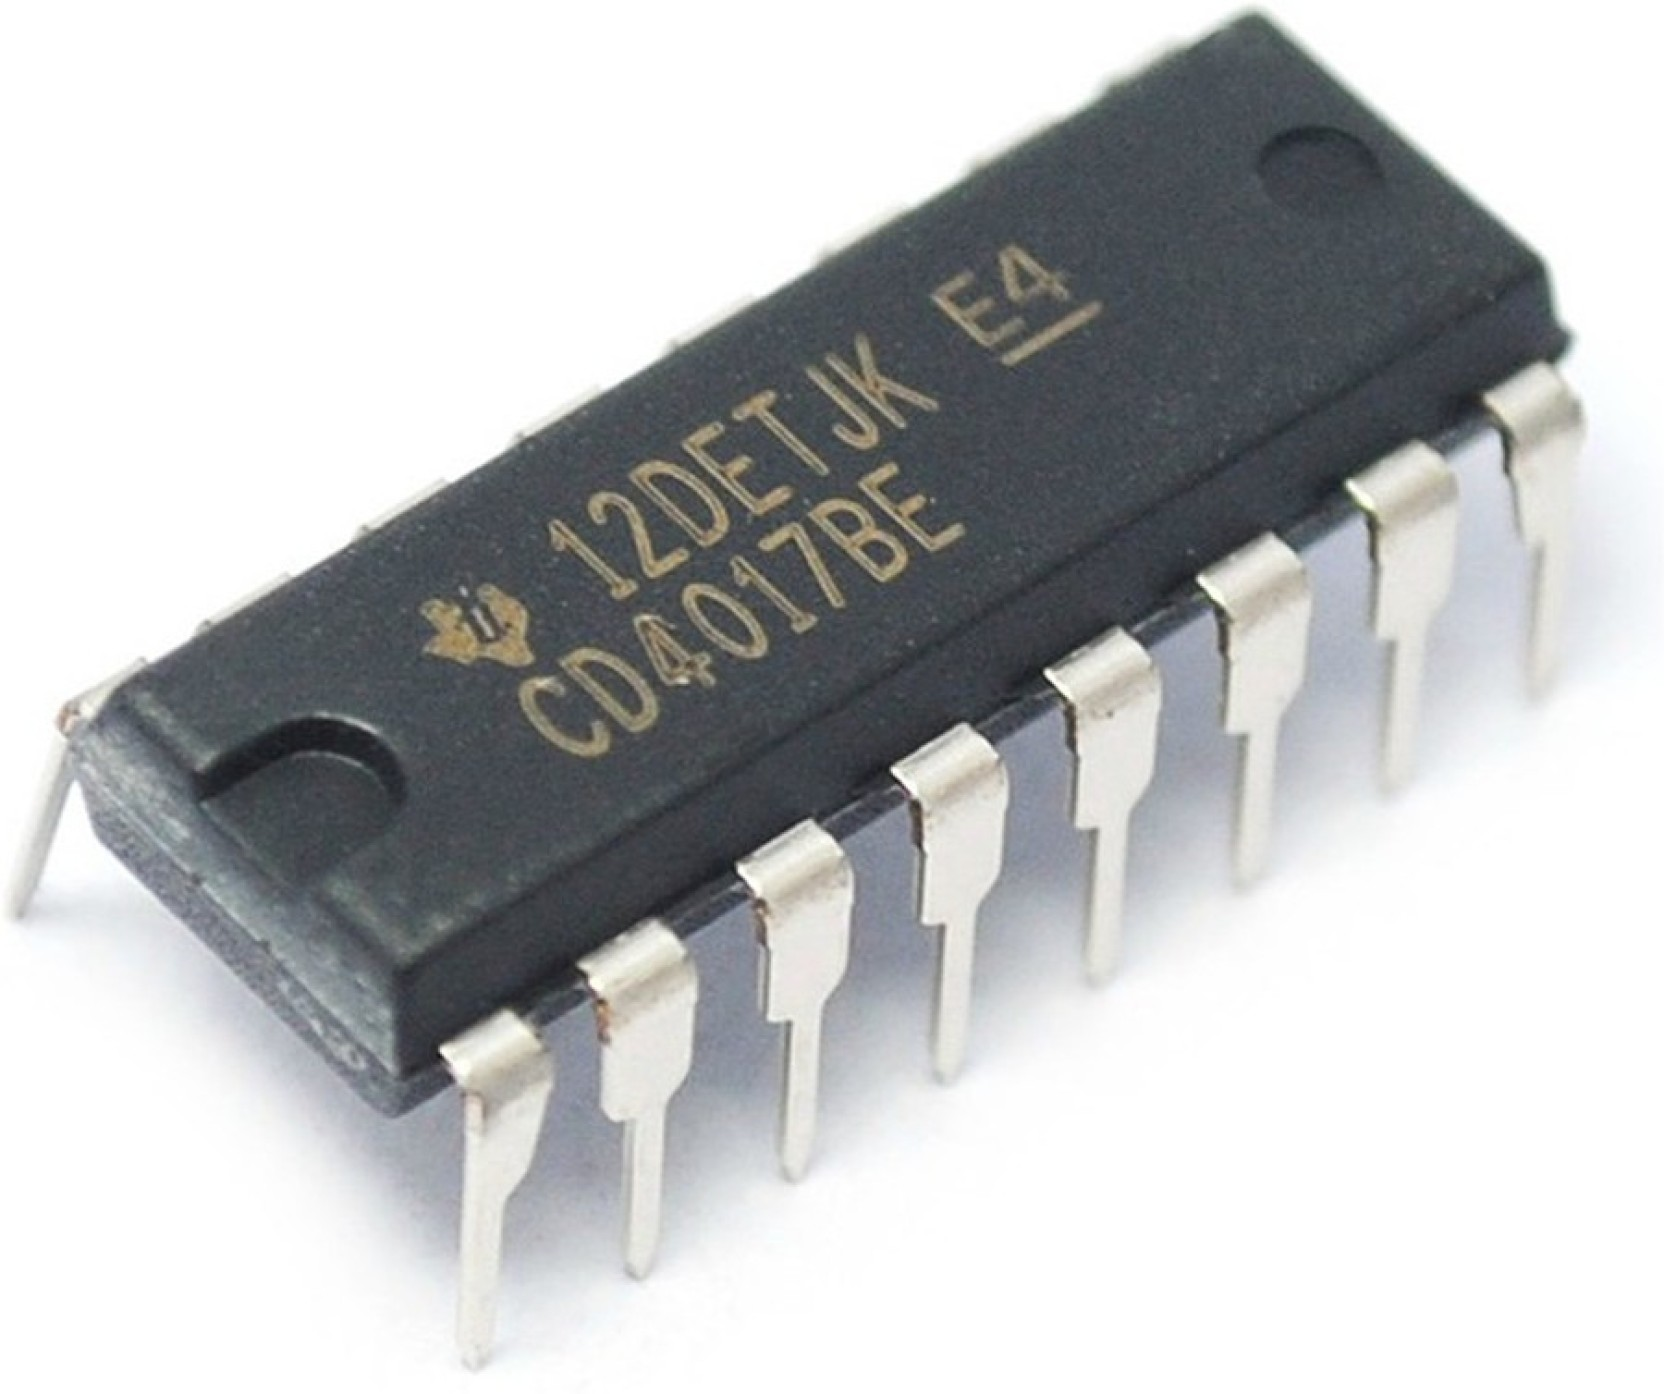 Dengineers 4017 Ic Timer Counter And Clock Electronic Hobby Kit Flip Flop Using Add To Cart